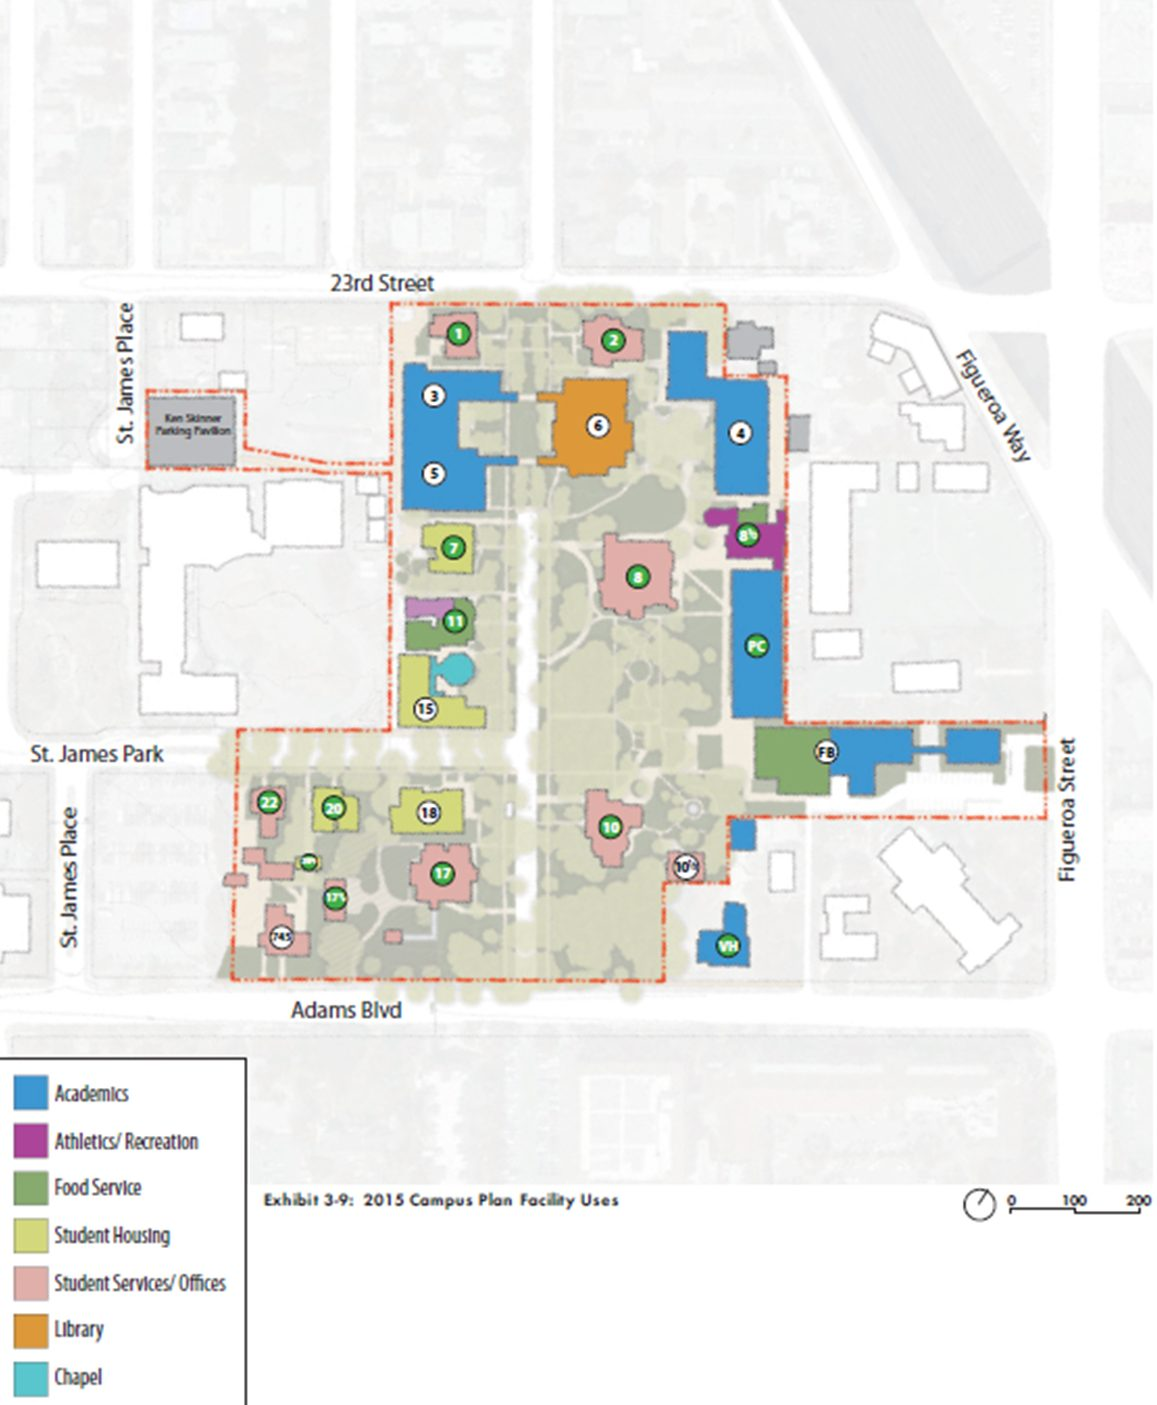 Mount Saint Mary's University Campus Master Plan - embledge+ on dominican university of california campus, california polytechnic state university campus, saint mary's college notre dame logo, saint mary's university california, college of saint elizabeth campus, claremont colleges campus, rockhurst university campus, university of notre dame campus, berkeley college california campus, santa clara university campus, college of the holy cross campus, vanguard university of southern california campus, saint mary's university halifax, saint mary's college of california history, saint mary's college of california logo, california institute of technology campus, college of saint benedict campus, california lutheran university campus,